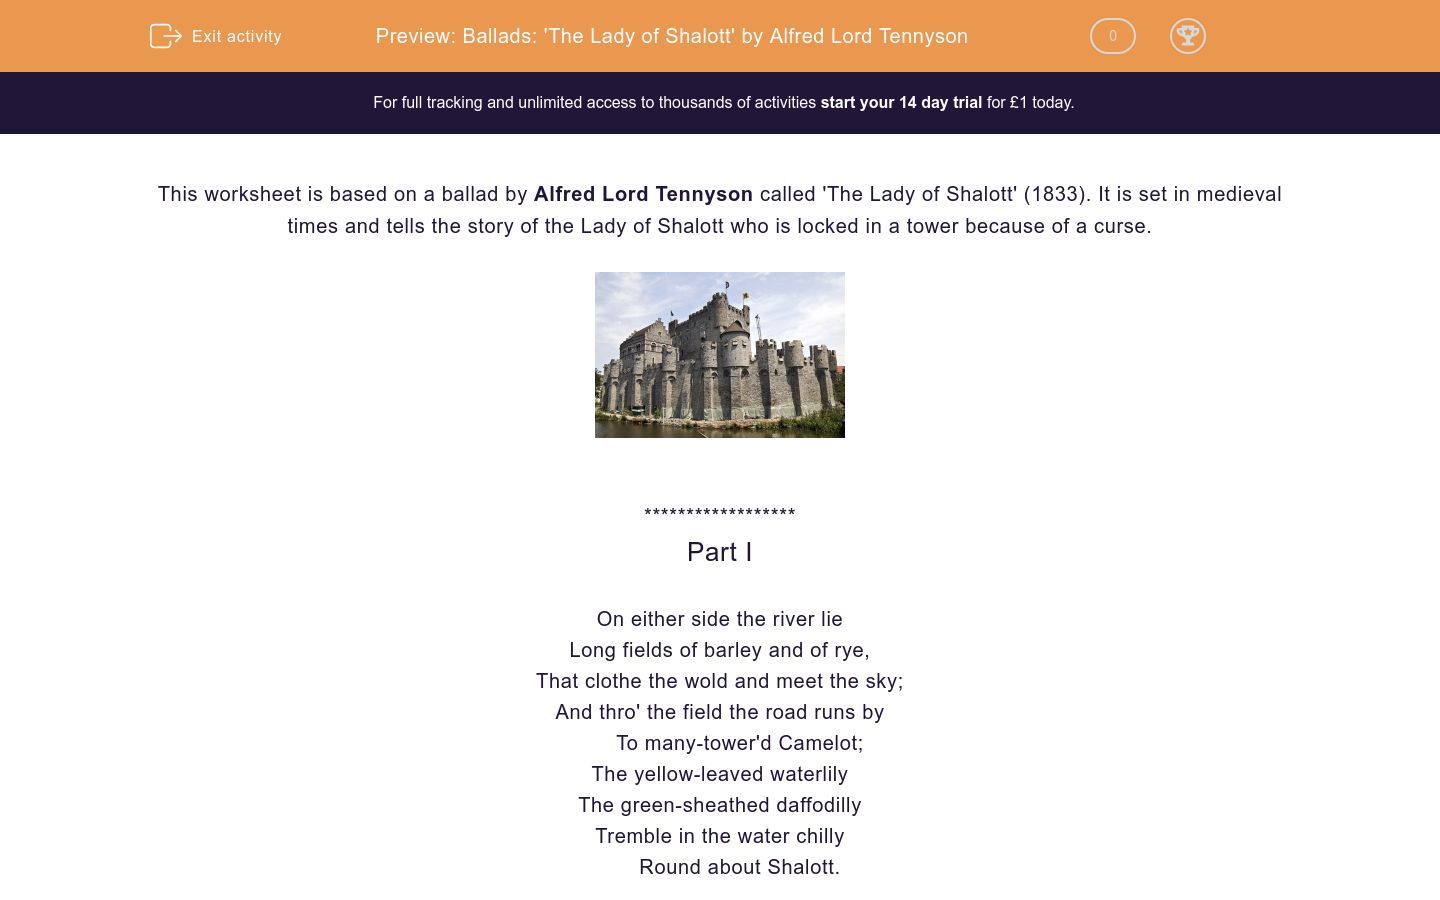 'Ballads: 'The Lady of Shalott' by Alfred Lord Tennyson' worksheet